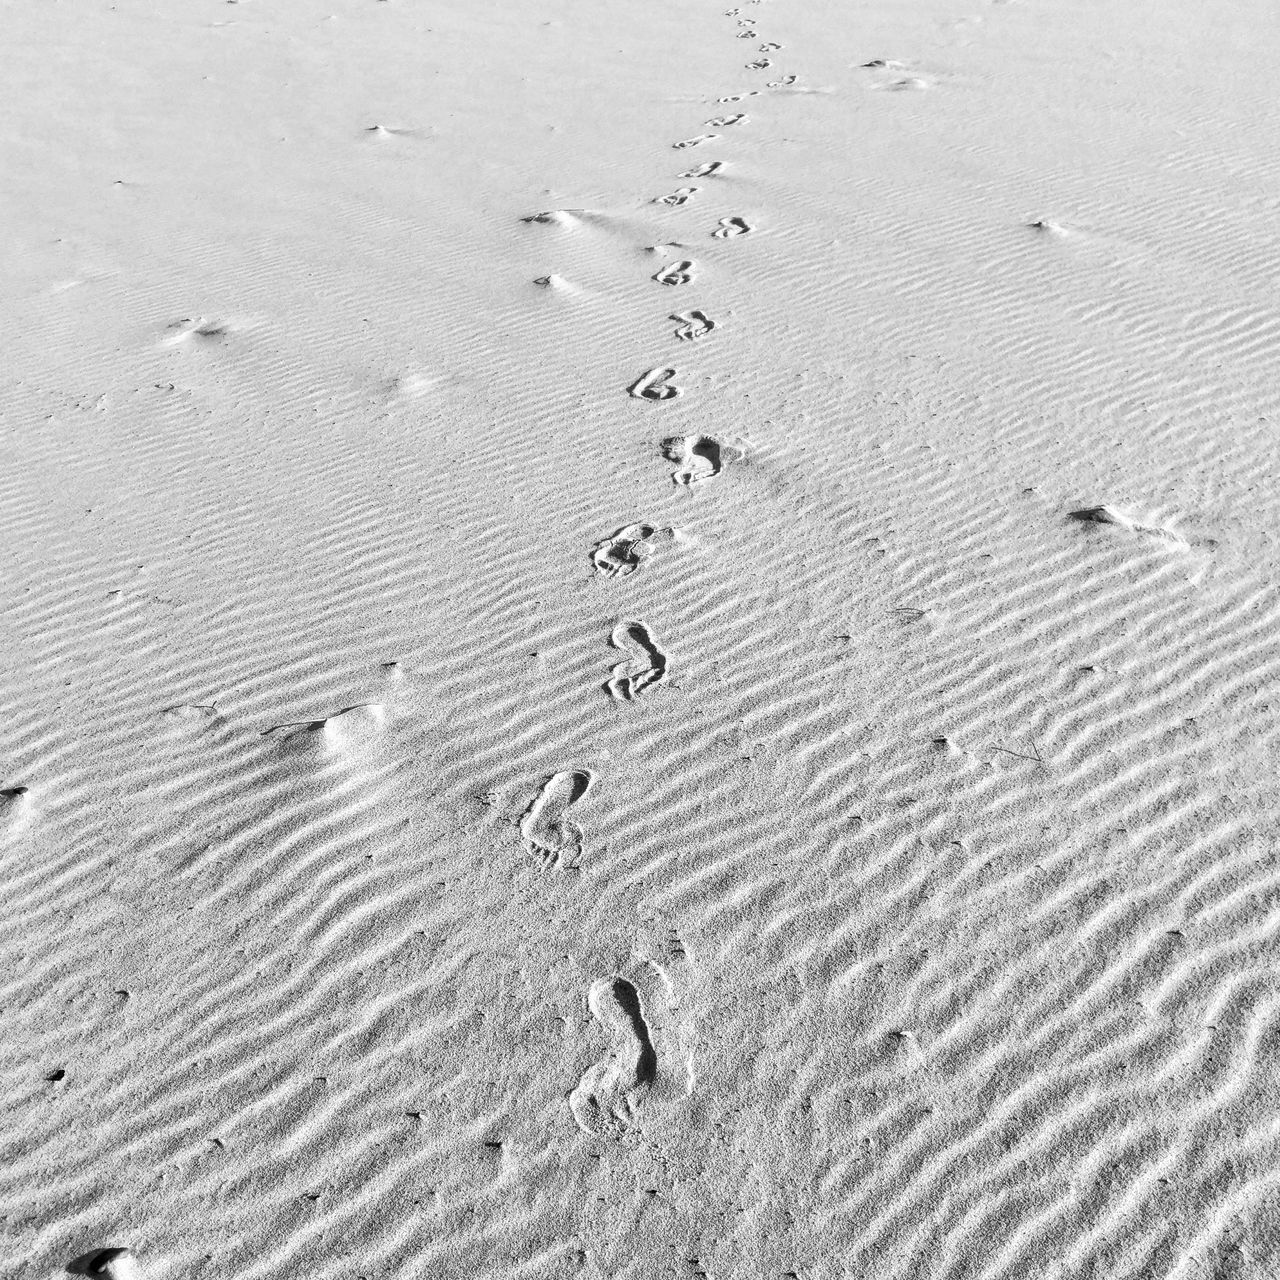 sand, beach, footprint, track - imprint, full frame, backgrounds, nature, paw print, no people, day, pattern, outdoors, tranquility, sand dune, close-up